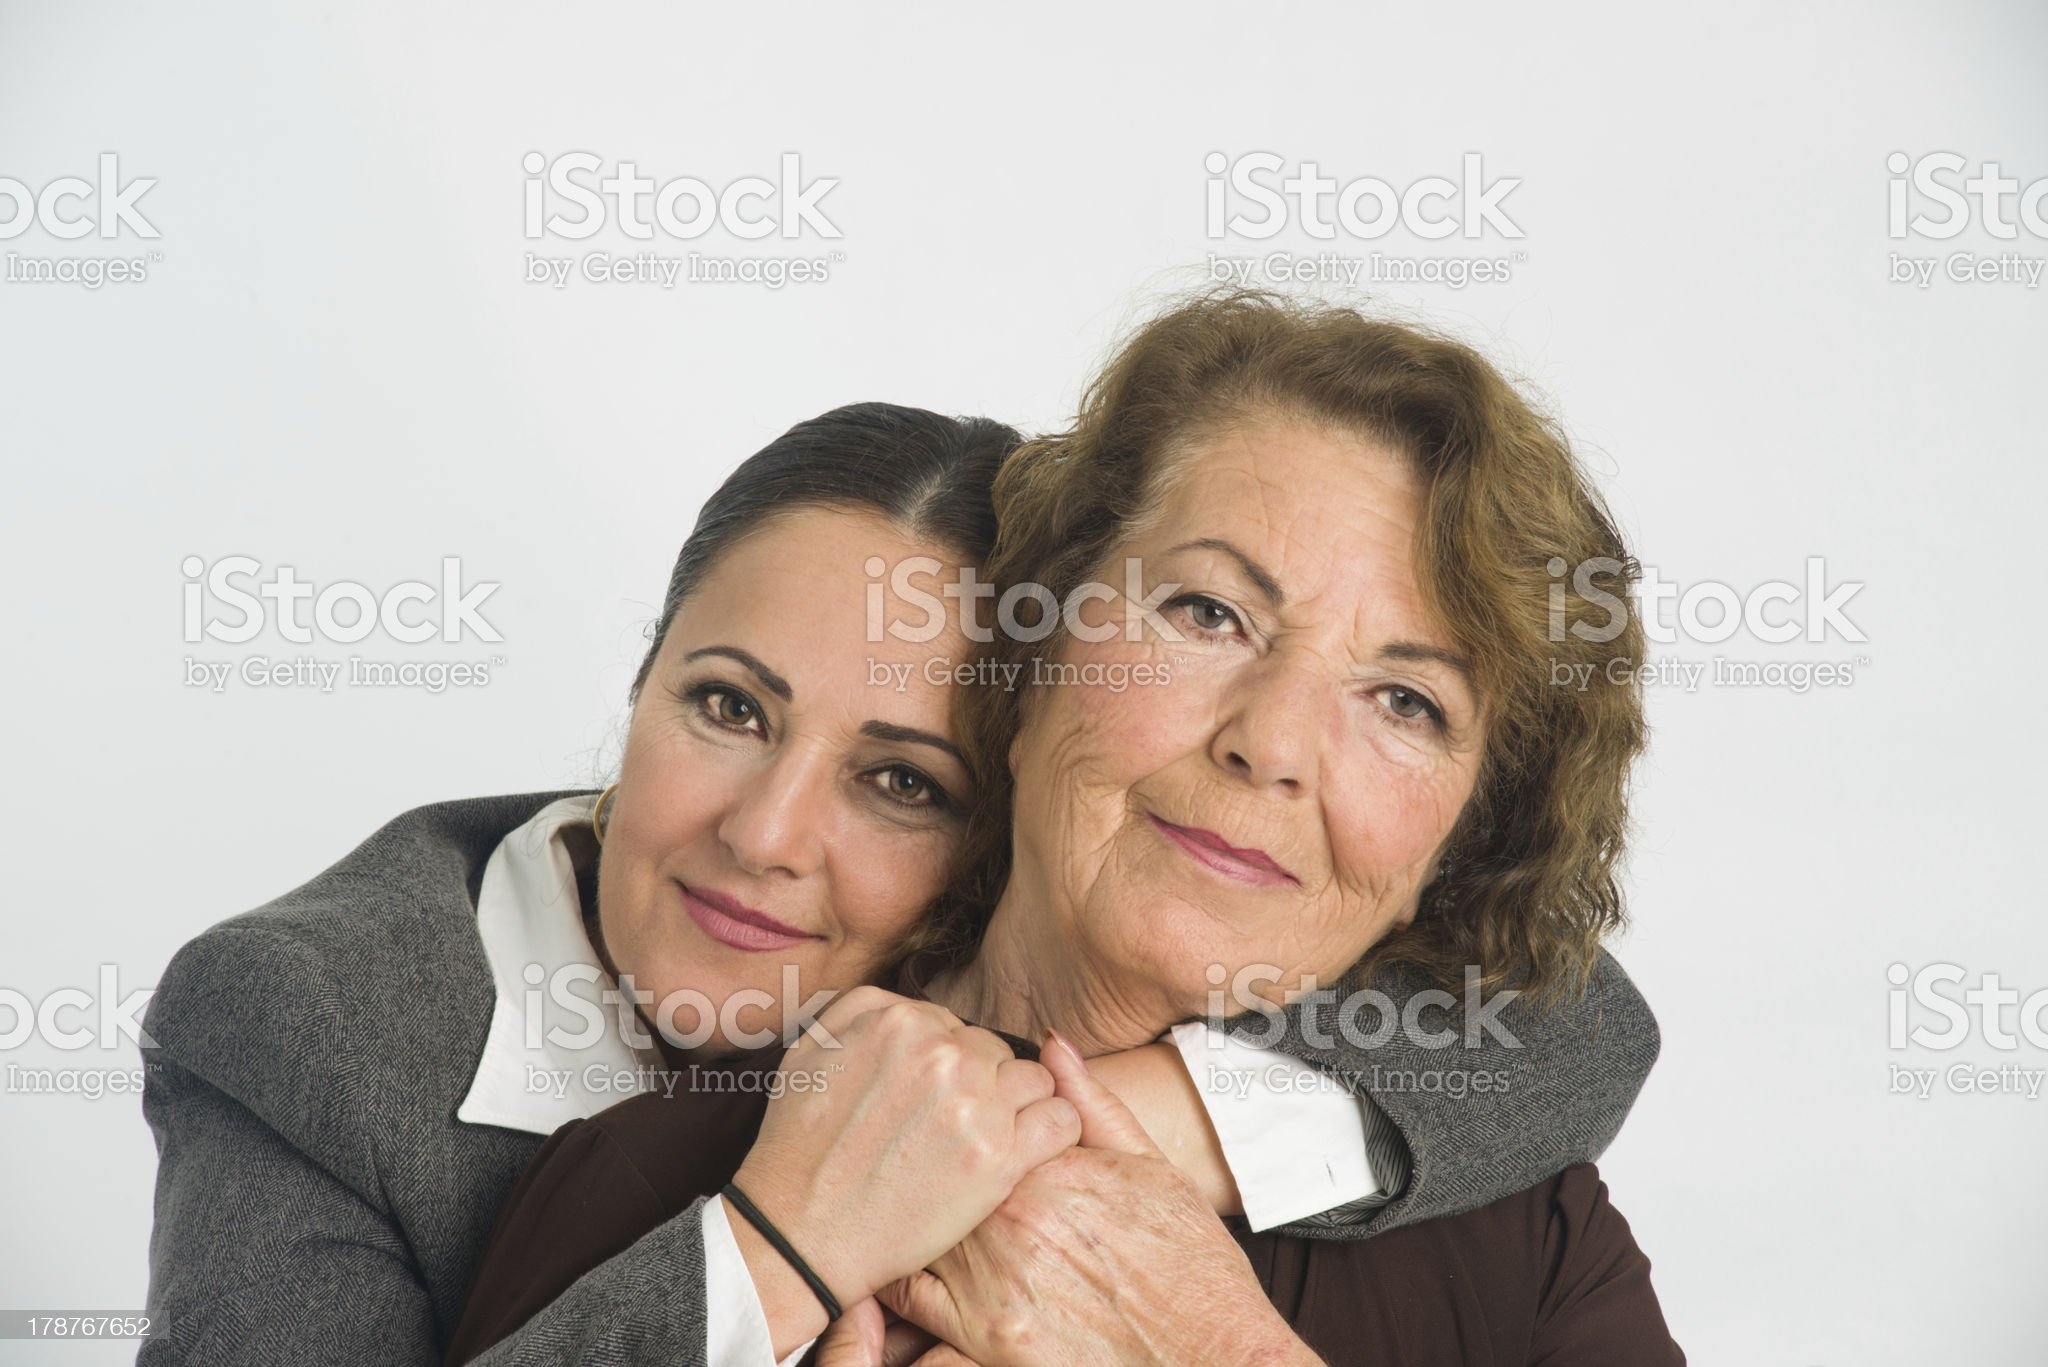 Daughter hugging her parent royalty-free stock photo